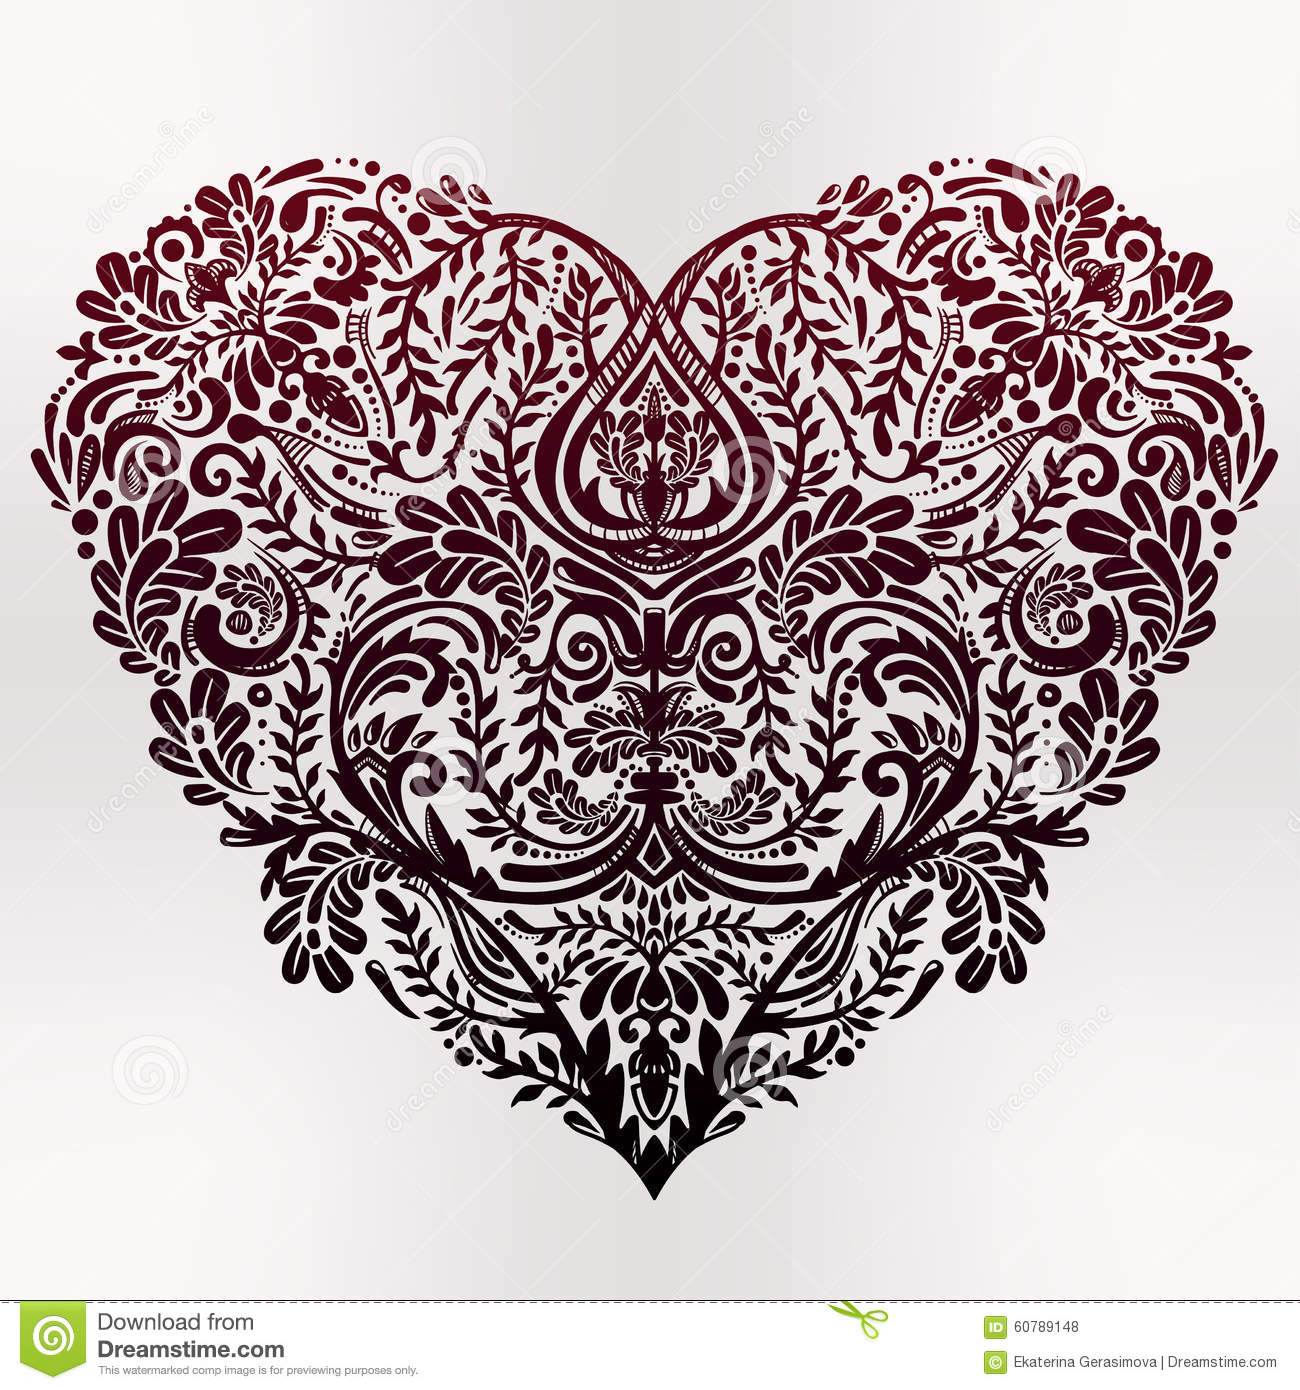 Lace Heart Vector Art Stock Vector Image 60789148